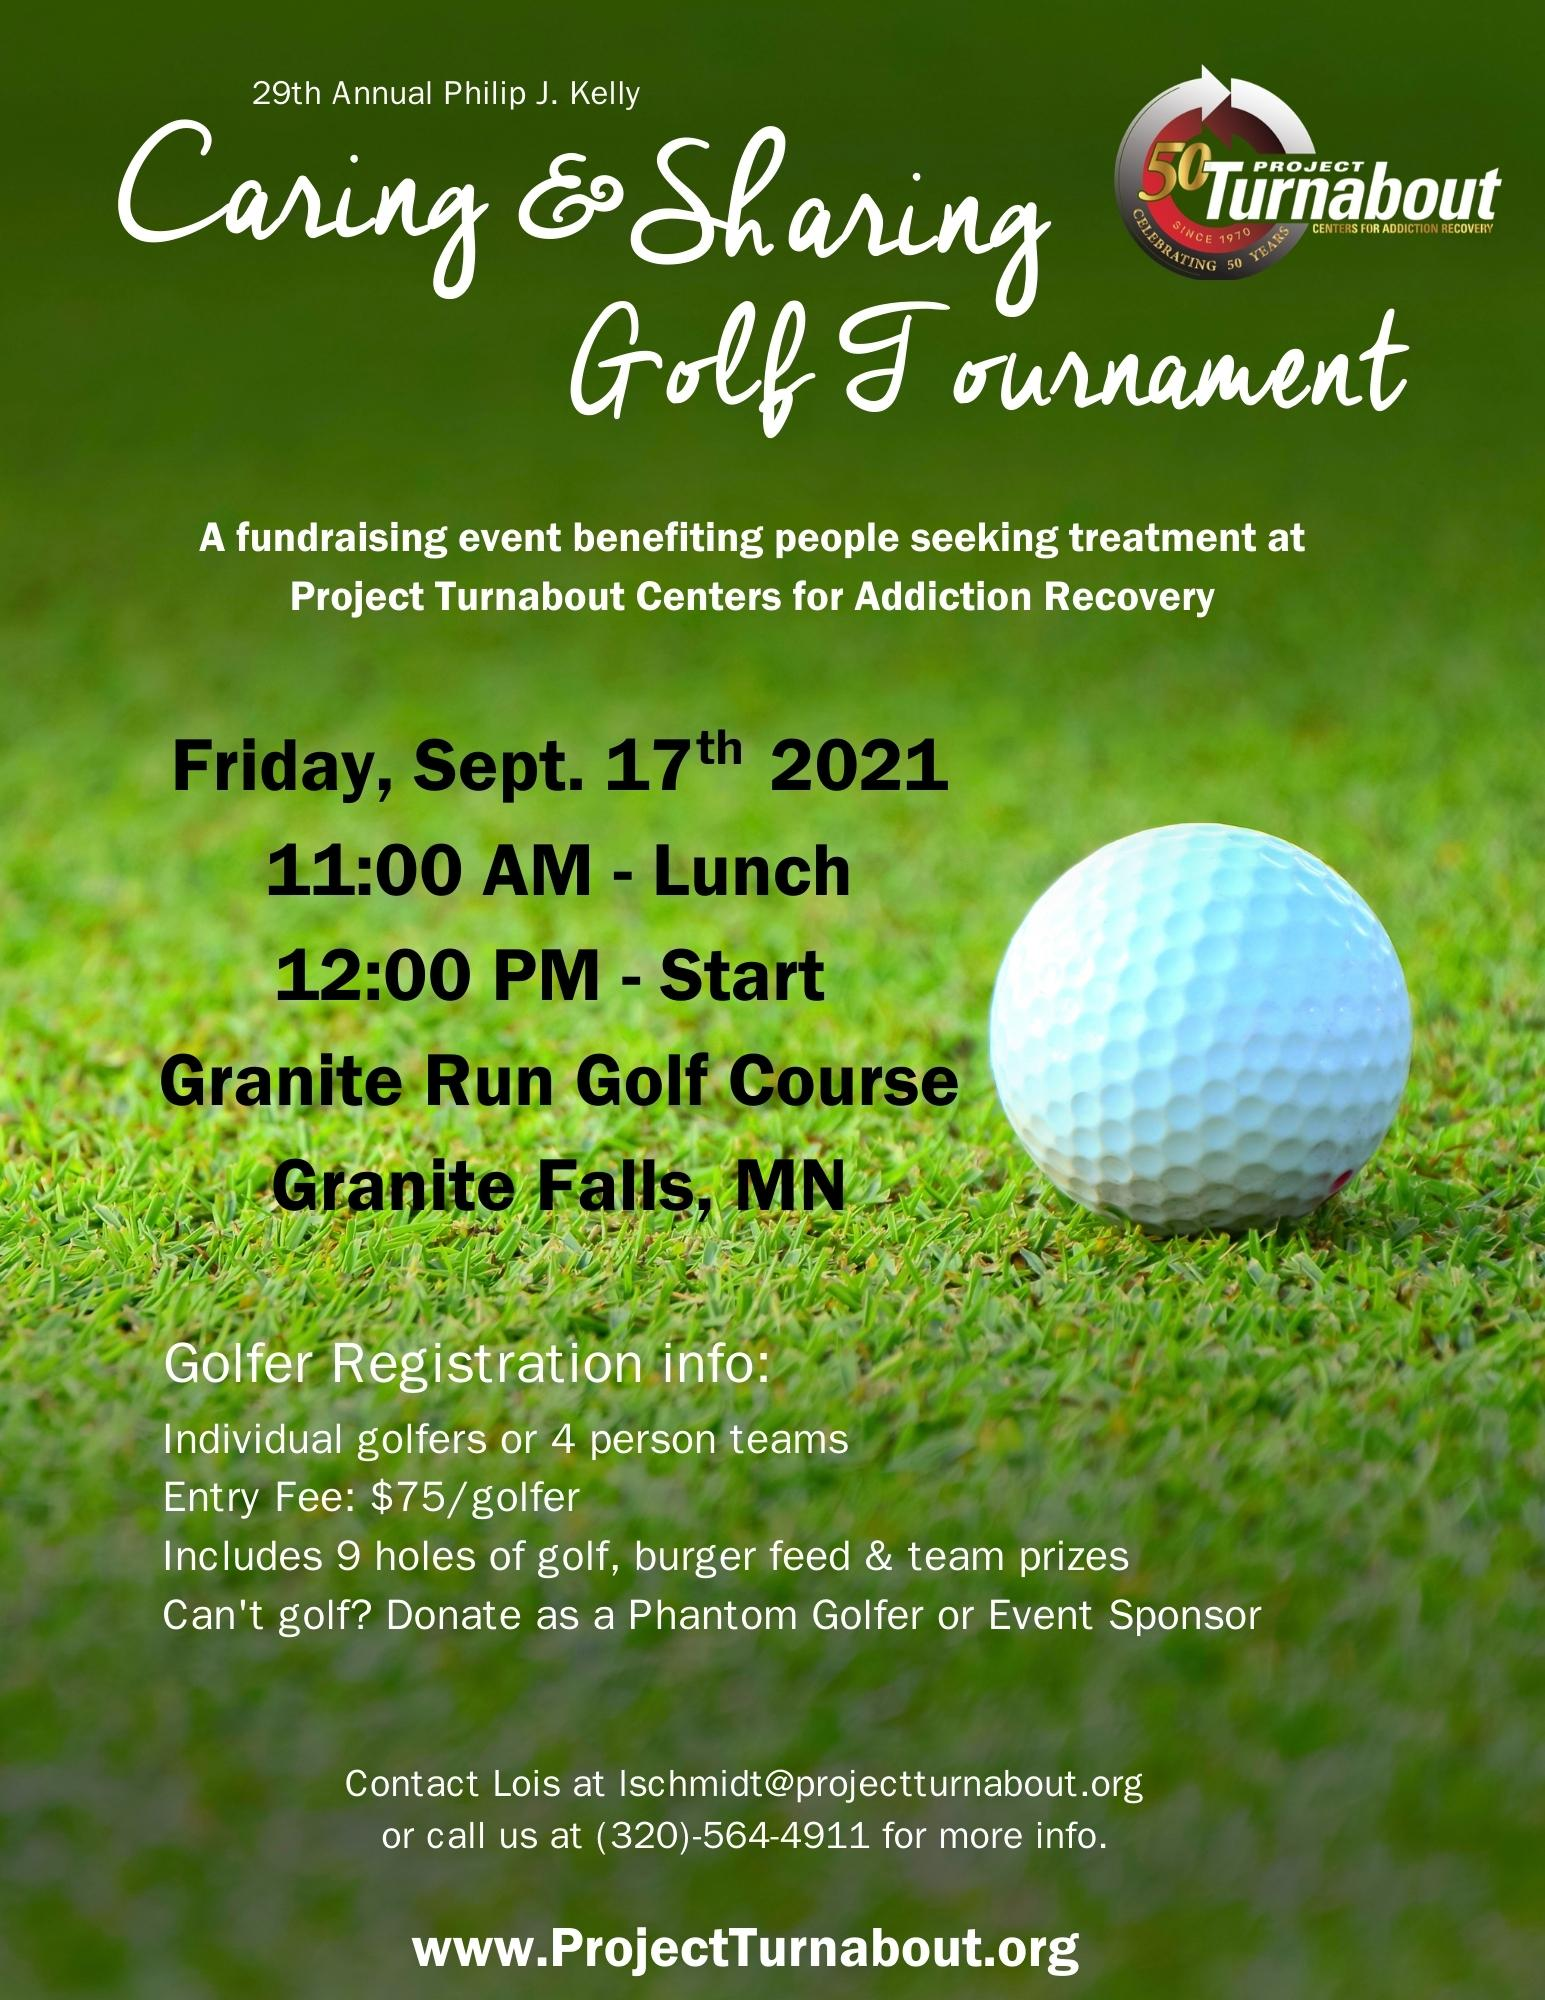 Project Turnabout 29th Annual Caring & Sharing Golf Tournament